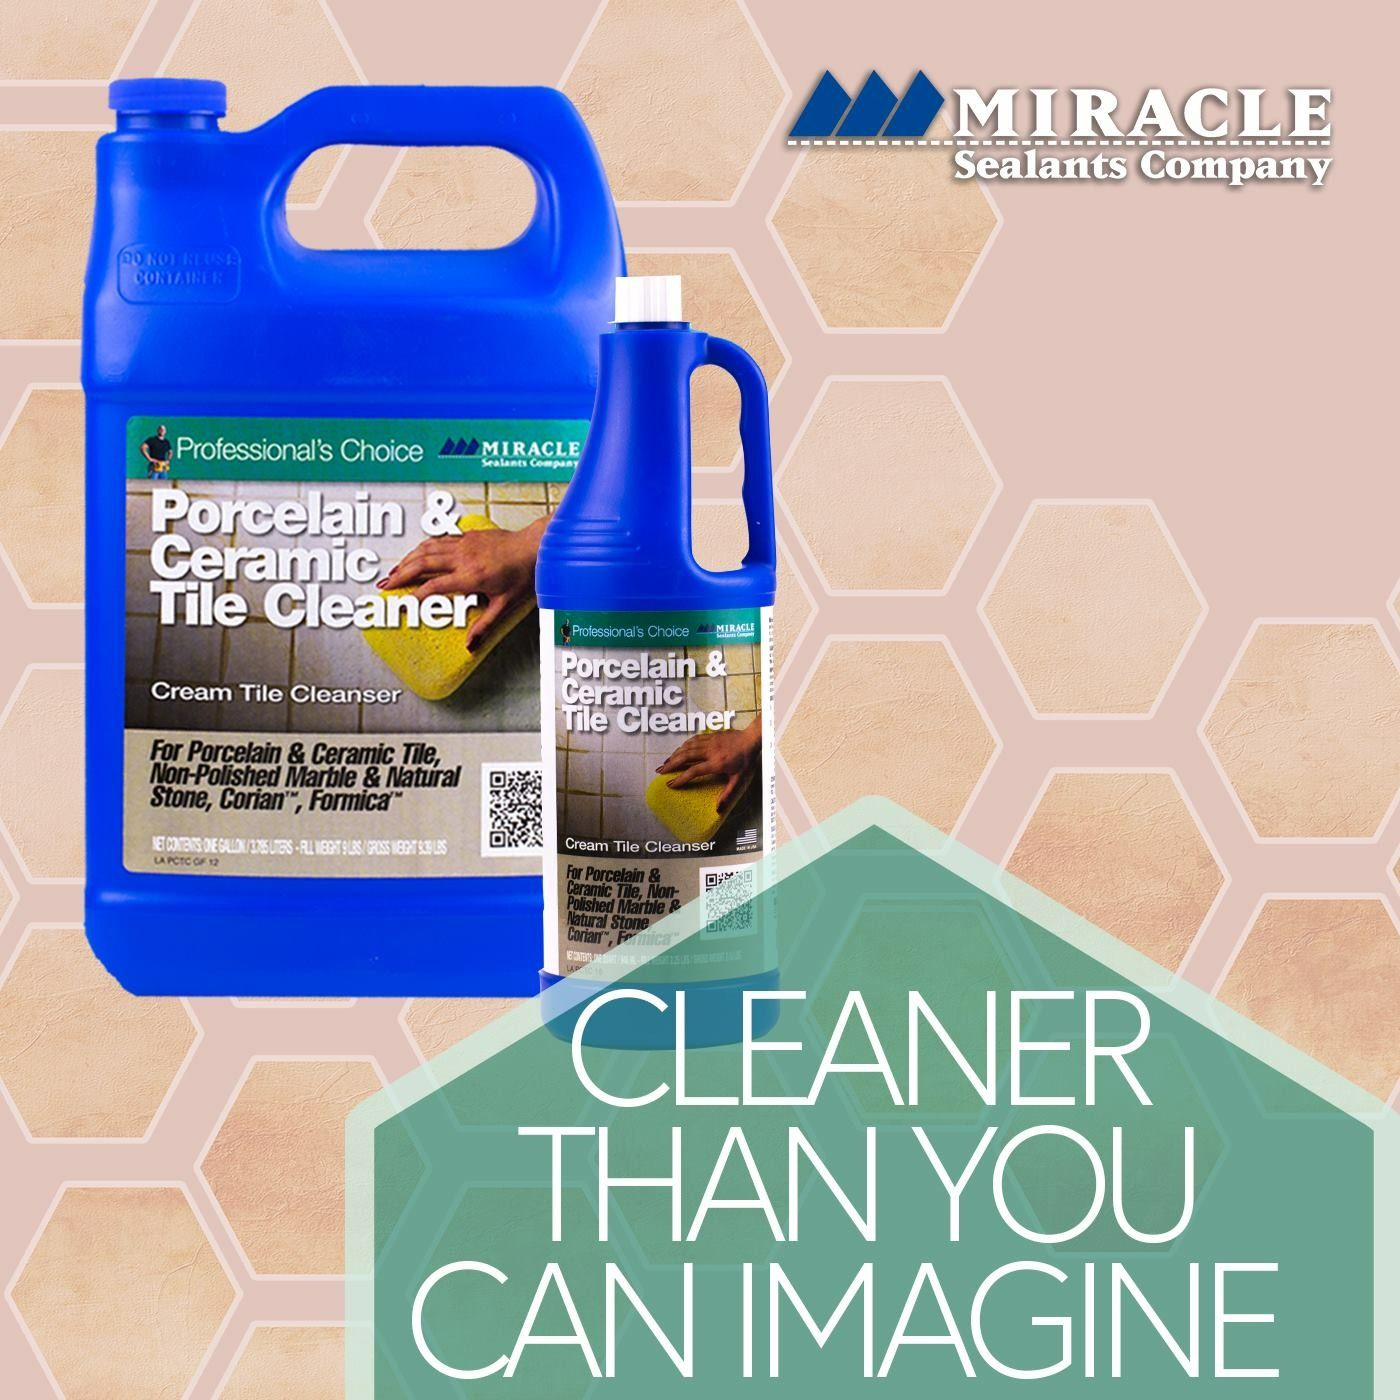 Porcelain Ceramic Tile Cleaner Will Have You Cleaner Than You Can